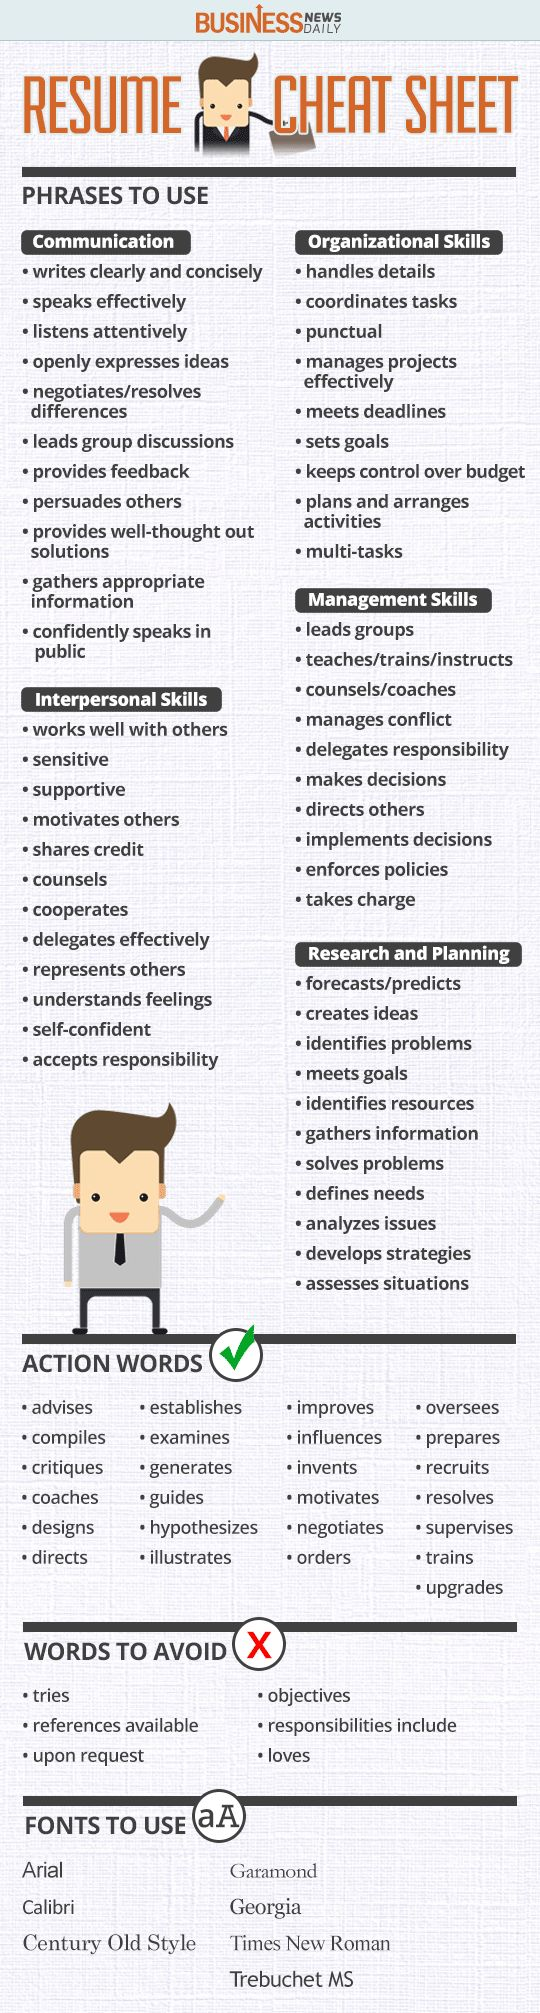 Opposenewapstandardsus  Stunning  Ideas About Resume On Pinterest  Cv Format Resume Cv And  With Glamorous Resume Cheat Sheet Infographic Andrews Almost Done With A Complete Unit On Employment Which With Astounding Nick Saban Resume Also Robert Irvine Resume In Addition Resume Tenplate And Resume With Salary History Example As Well As It Resumes Examples Additionally Legal Secretary Resume Sample From Pinterestcom With Opposenewapstandardsus  Glamorous  Ideas About Resume On Pinterest  Cv Format Resume Cv And  With Astounding Resume Cheat Sheet Infographic Andrews Almost Done With A Complete Unit On Employment Which And Stunning Nick Saban Resume Also Robert Irvine Resume In Addition Resume Tenplate From Pinterestcom